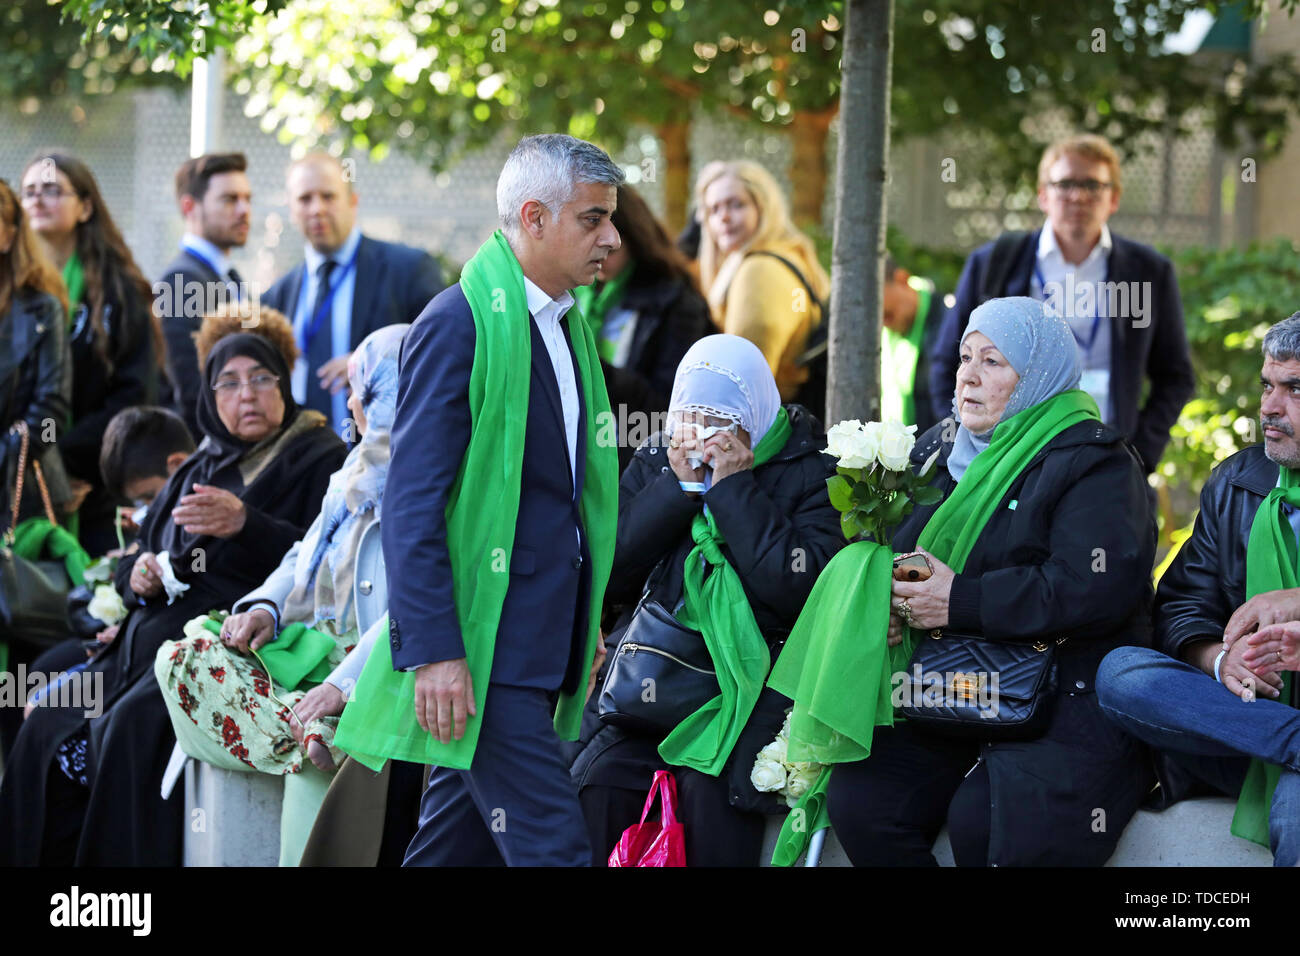 Mayor of London Sadiq Kahn arrives outside Grenfell Tower, London, to meet family and friends ahead of the wreath laying ceremony, which will mark the two-year anniversary of the tower block fire in memory of the 72 people who lost their lives. - Stock Image